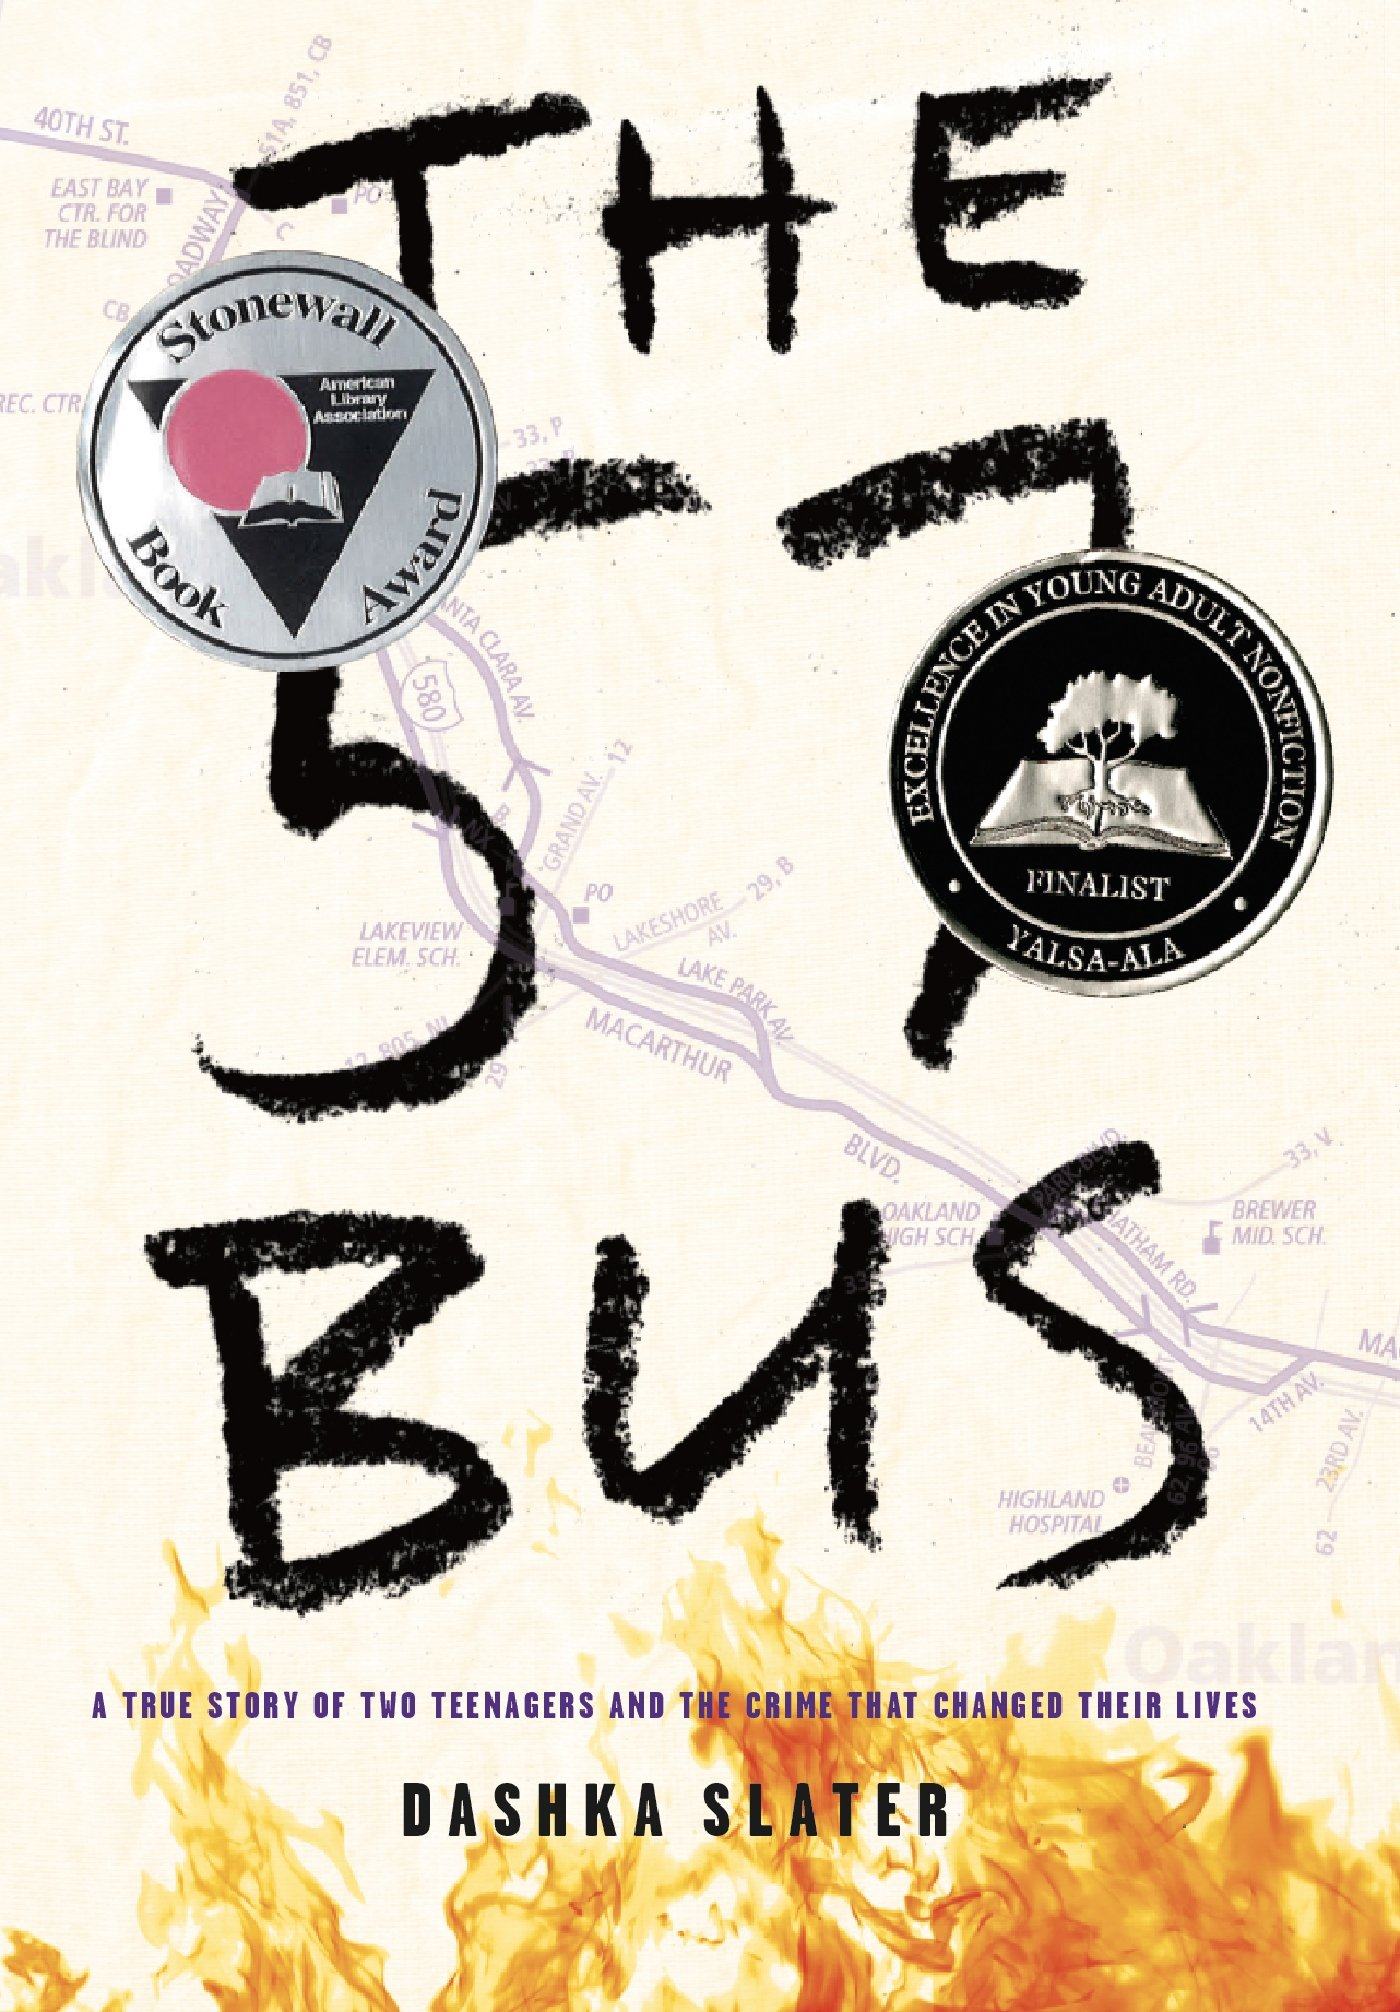 Amazon.com: The 57 Bus: A True Story of Two Teenagers and ...